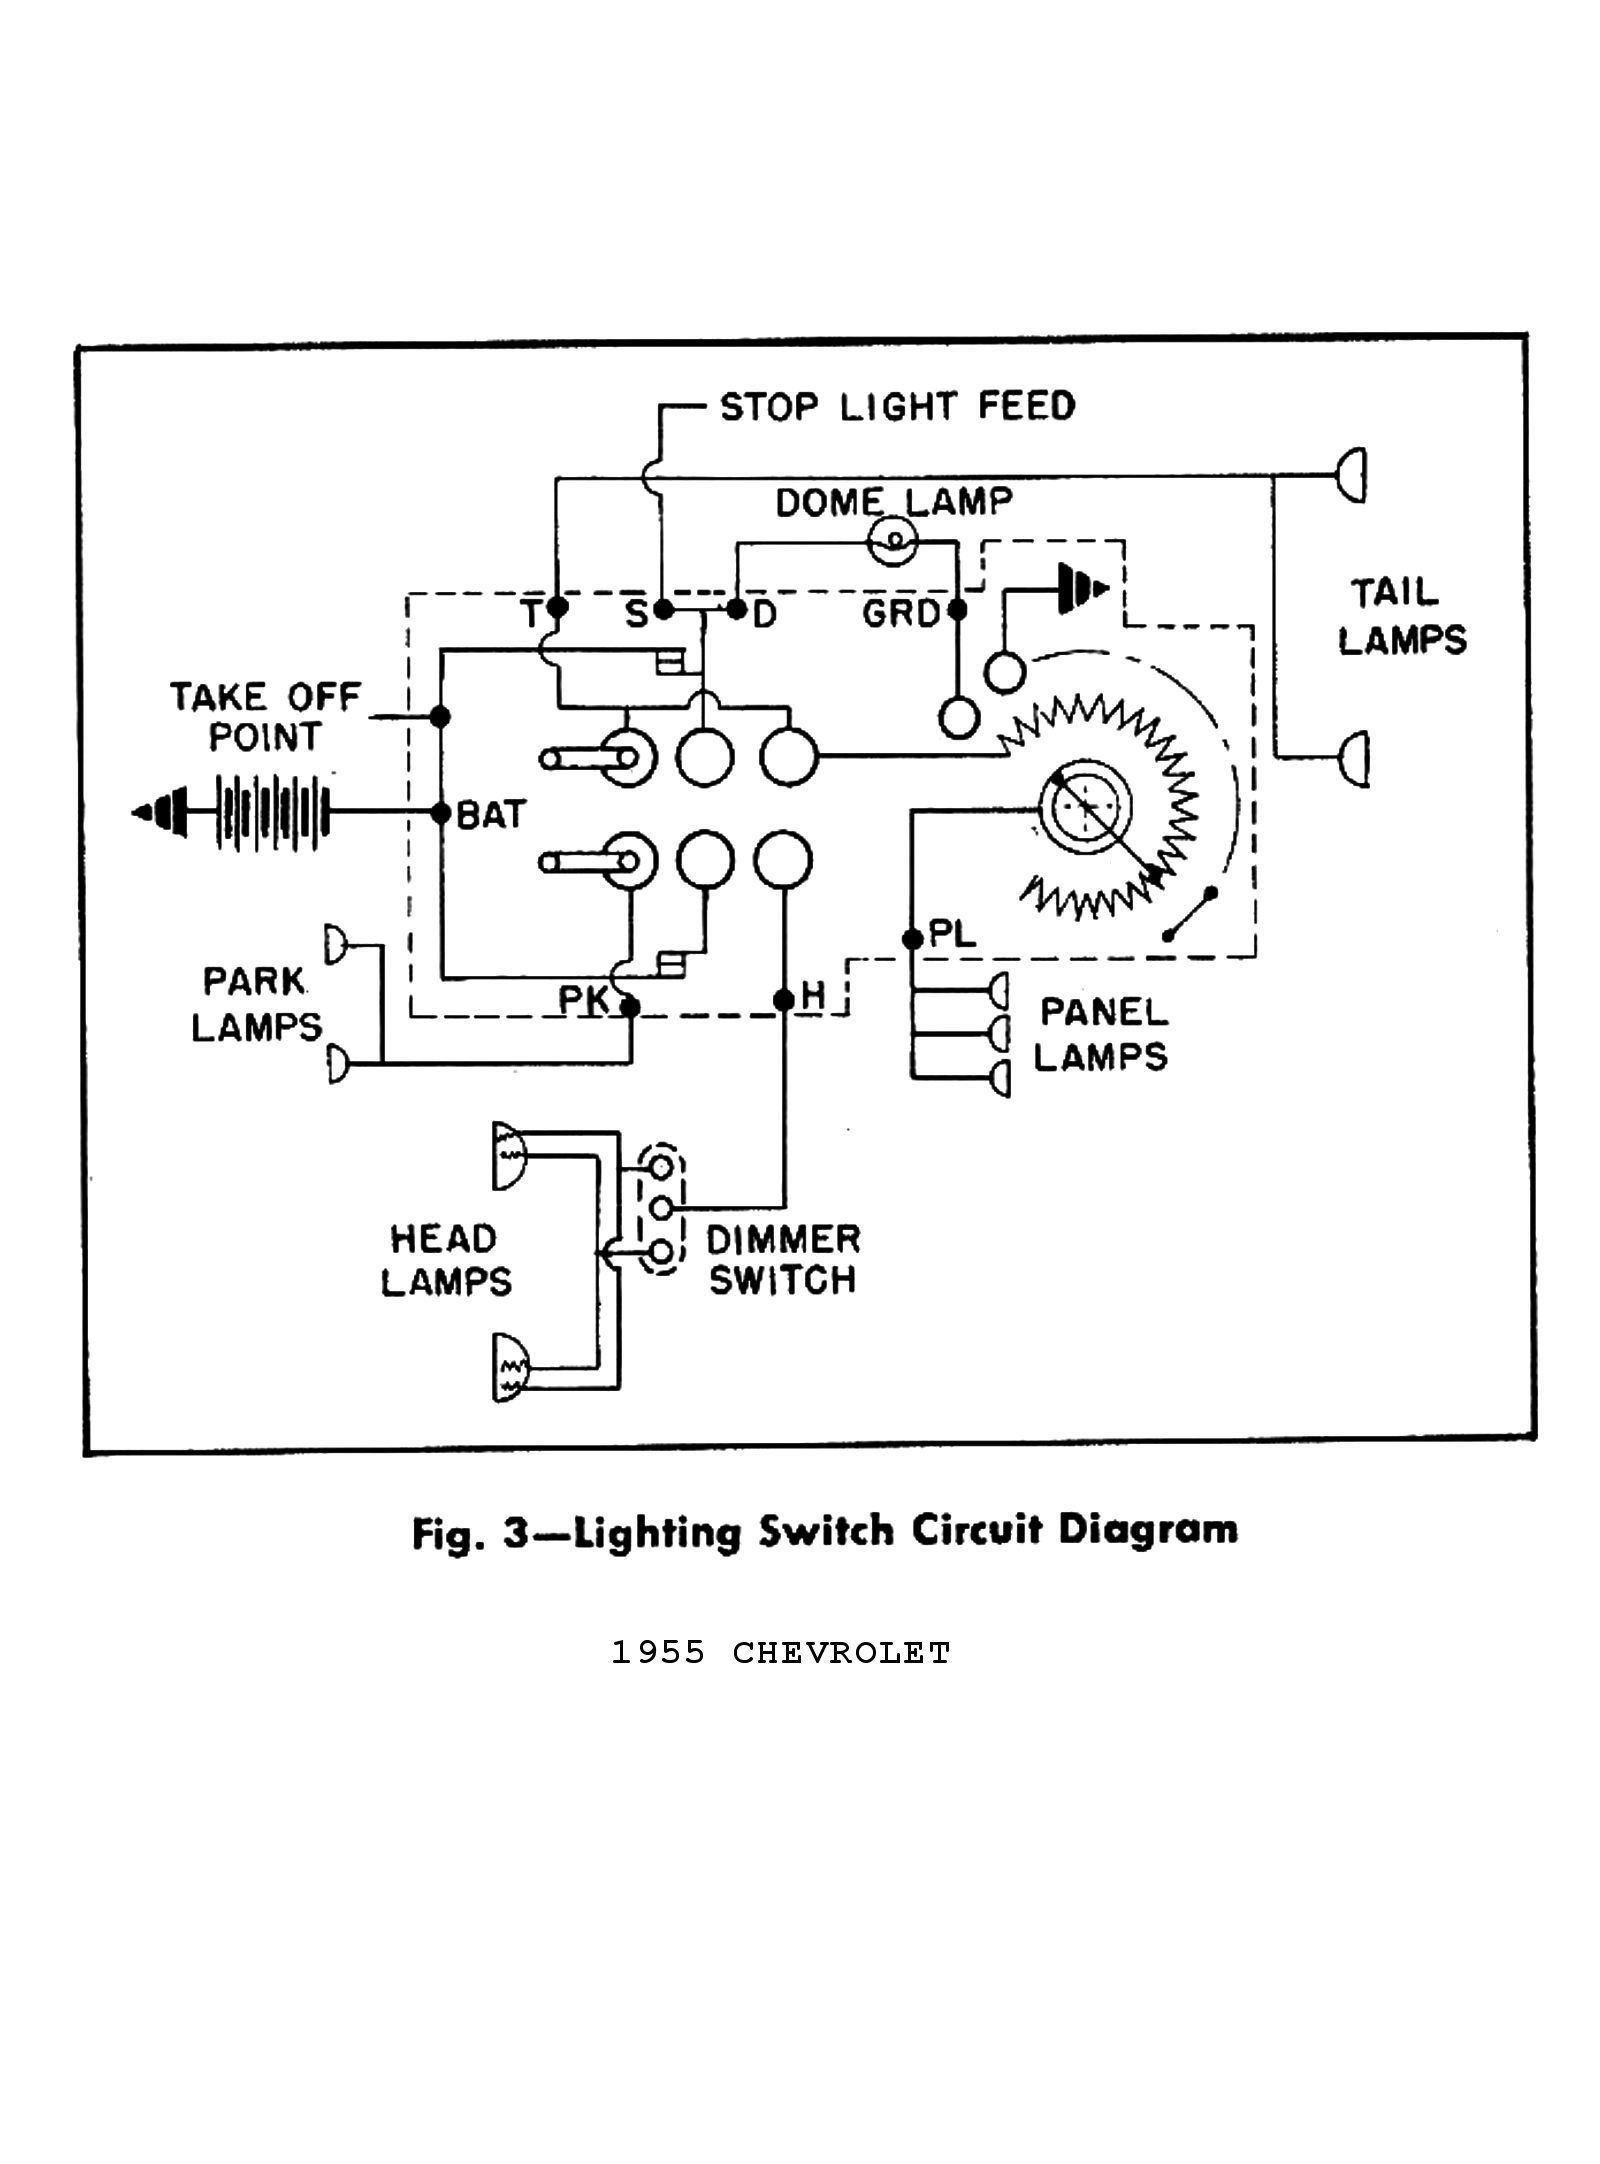 hight resolution of universal ignition switch wiring diagram inspirational 1955 chevy of for 1955 chevy ignition switch wiring diagram